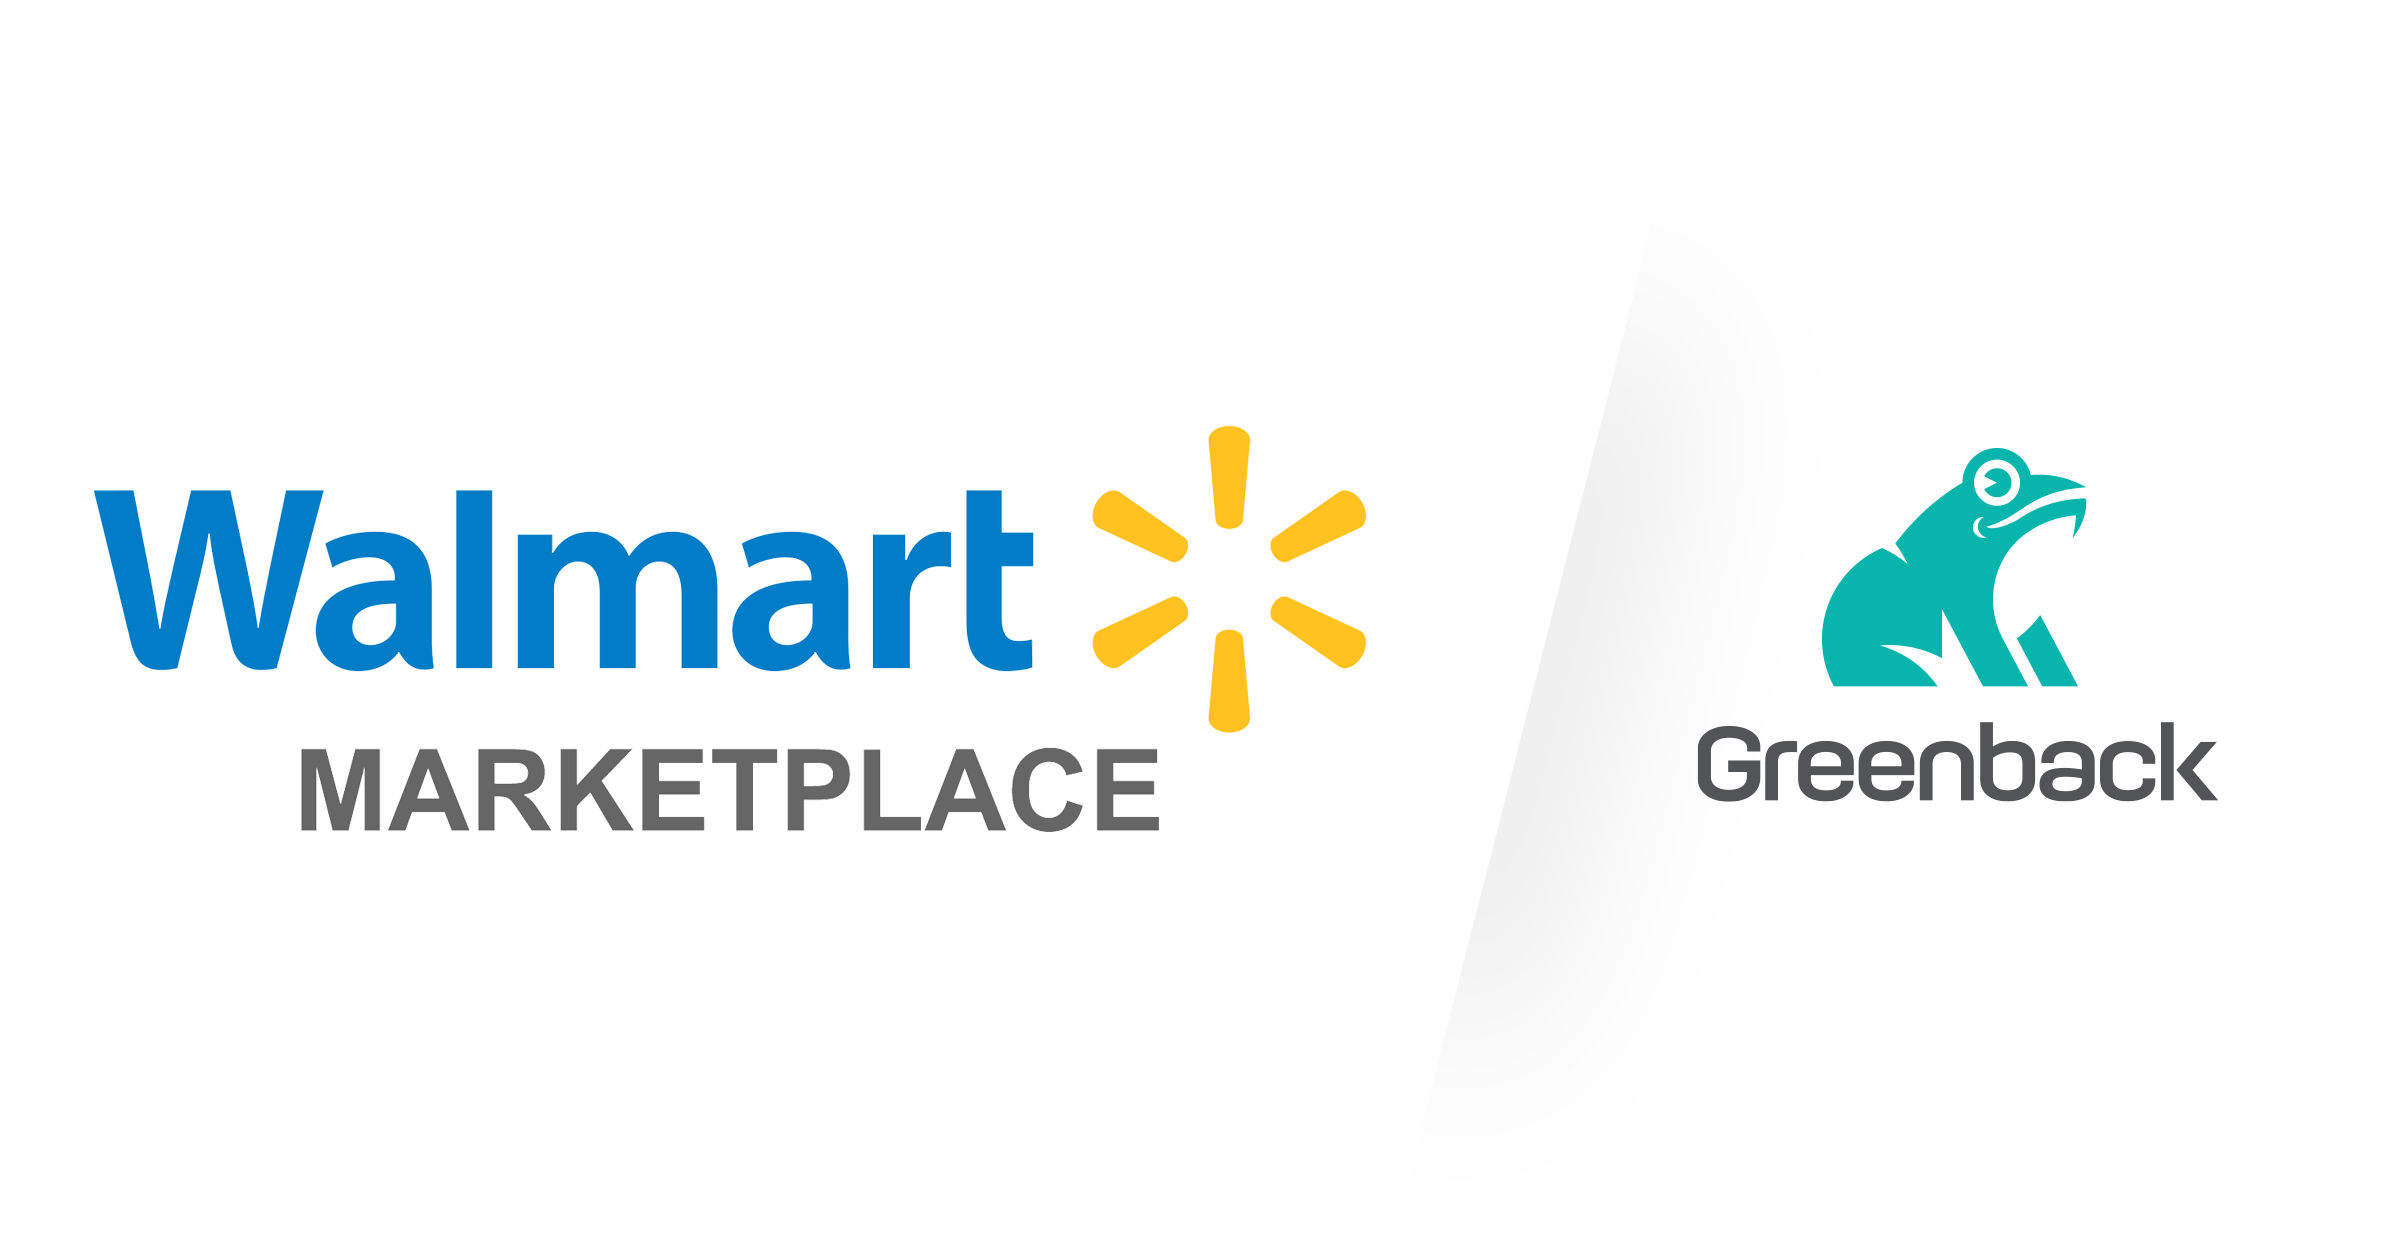 How to connect your Walmart Seller account to Greenback